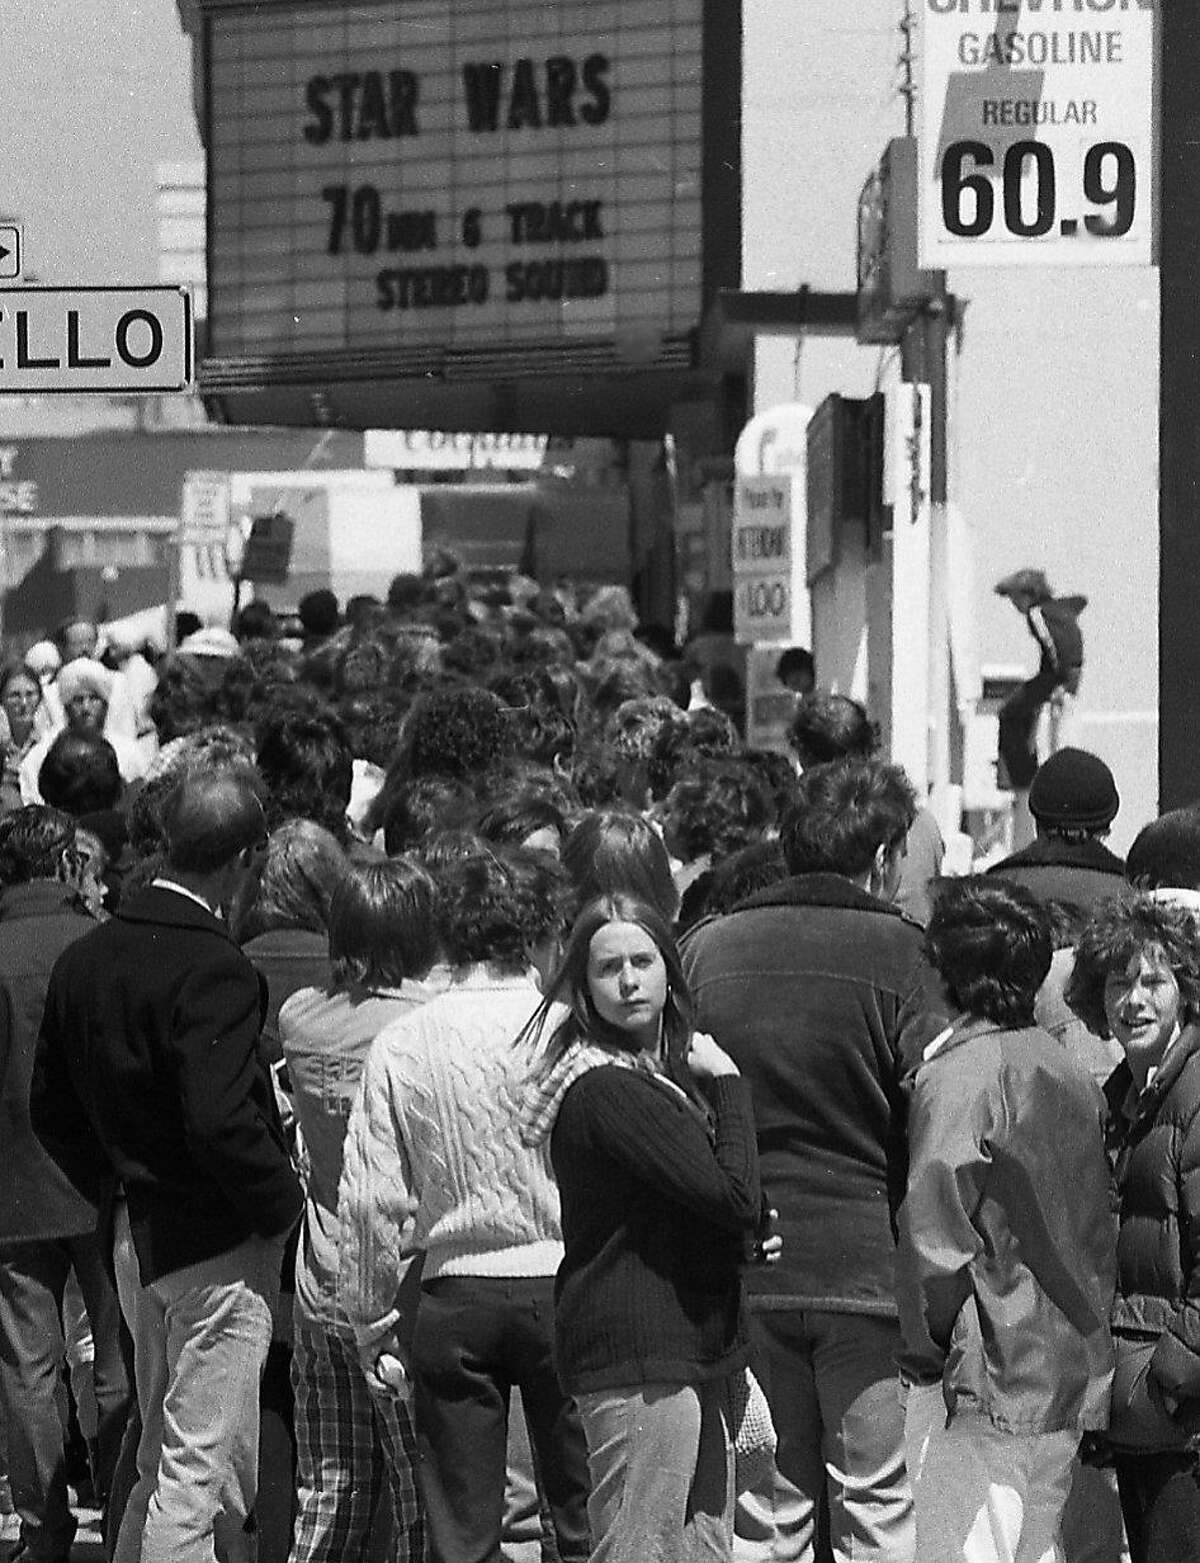 May 25, 1977: Fans line up during opening weekend to see